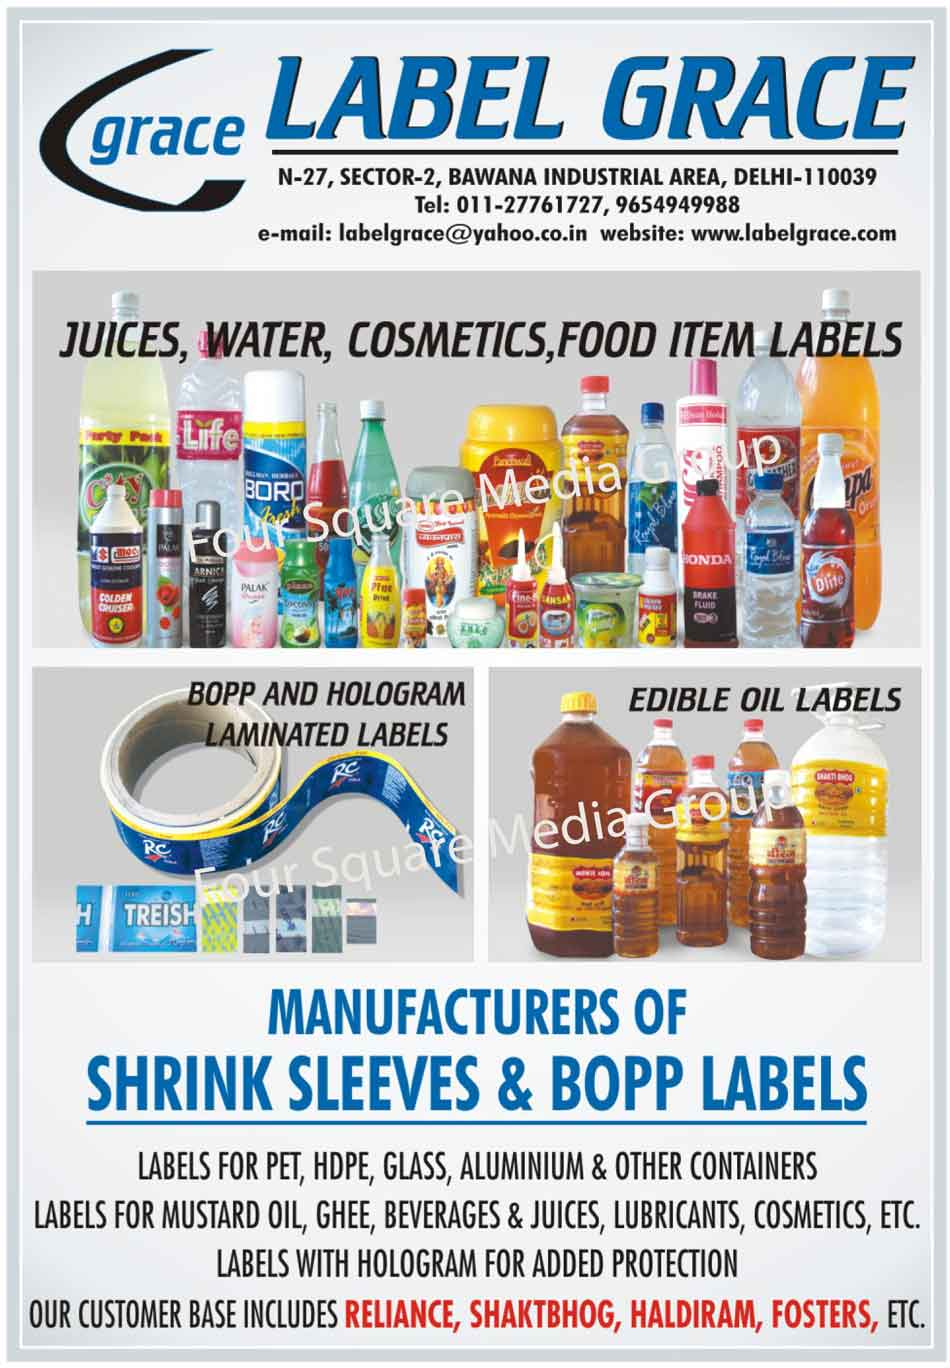 Shrink Sleeves, BOPP Labels, Hologram Laminated Sleeves, Printed PVC Rolls, Printed PVC Tubes, Preformed Sleeves, Labels, Hologram Laminated Labels, Edible Oil Labels, Pet Labels, HDPE Labels, Glass Labels, Aluminium Labels, Container Labels, Mustard Oil Labels, Ghee Labels, Beverage Labels, Juice Labels, Lubricant Labels, Cosmetic Labels, Water Labels, Food Item Labels